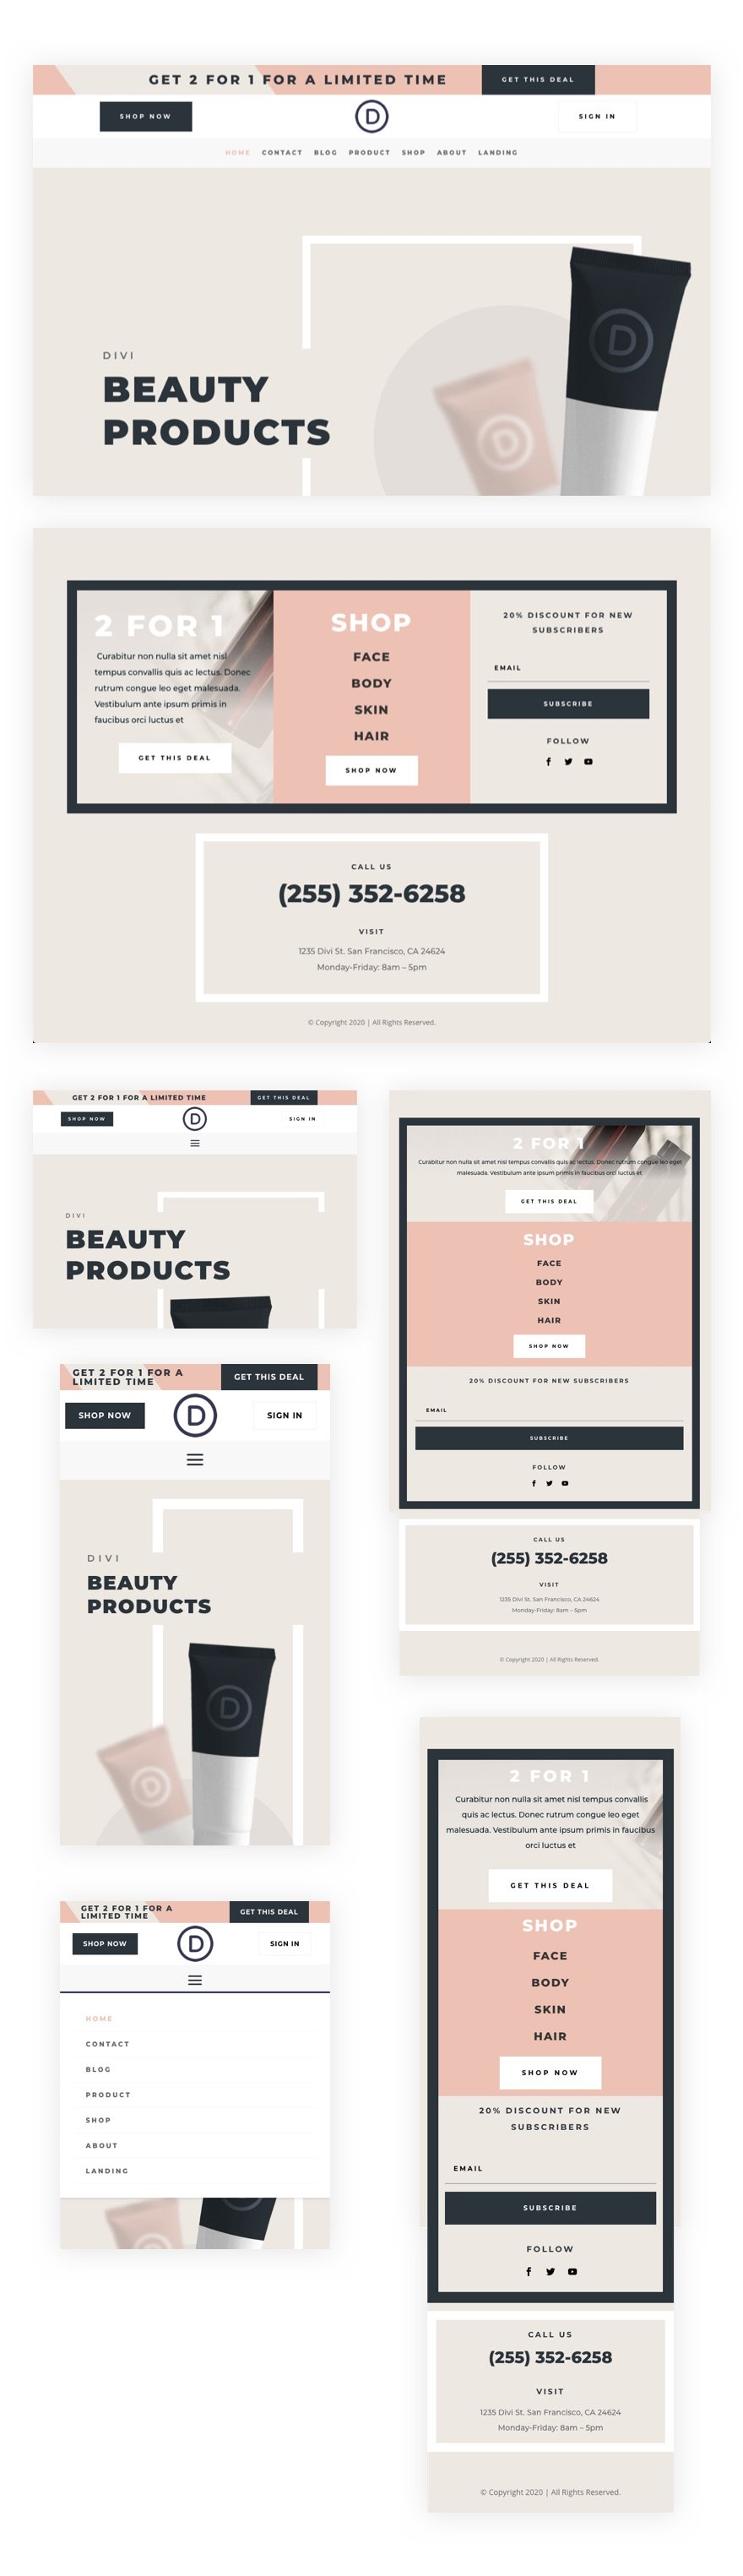 download-a-free-header-and-footer-for-divis-beauty-product-layout-pack Download a FREE Header and Footer for Divi's Beauty Product Layout Pack